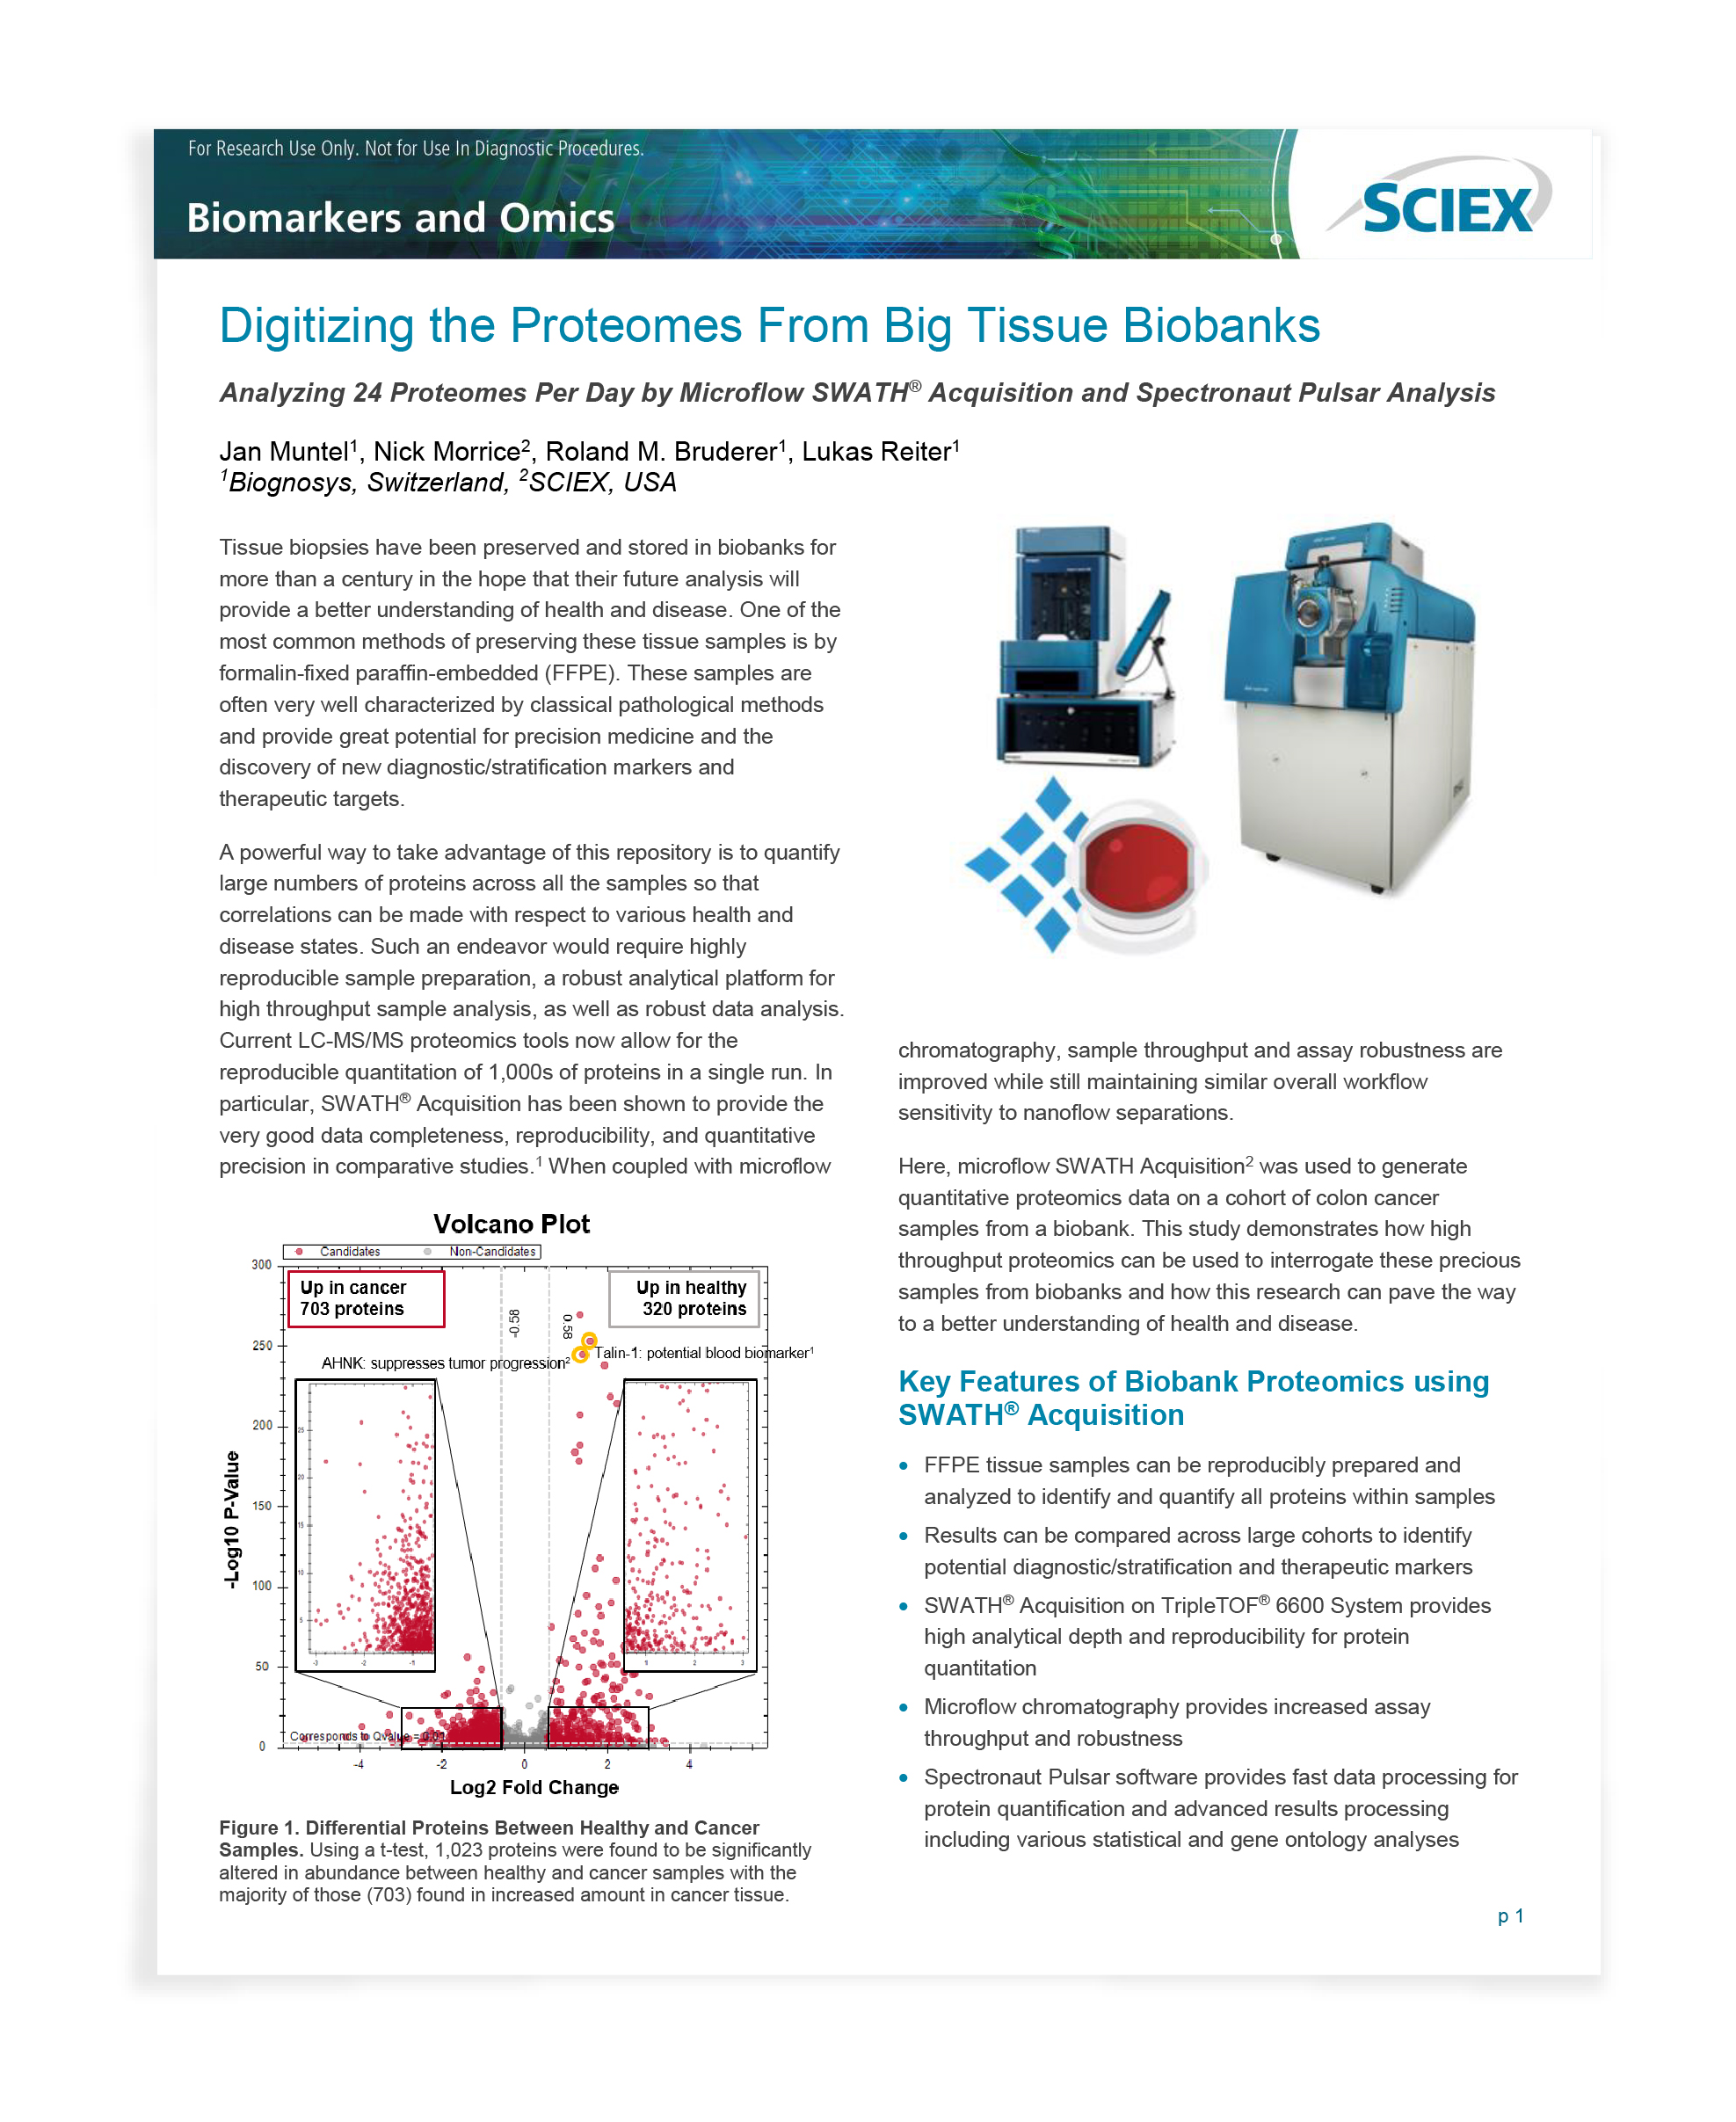 Digitizing-the-Proteomes-From-Big-Tissue-Biobanks_2